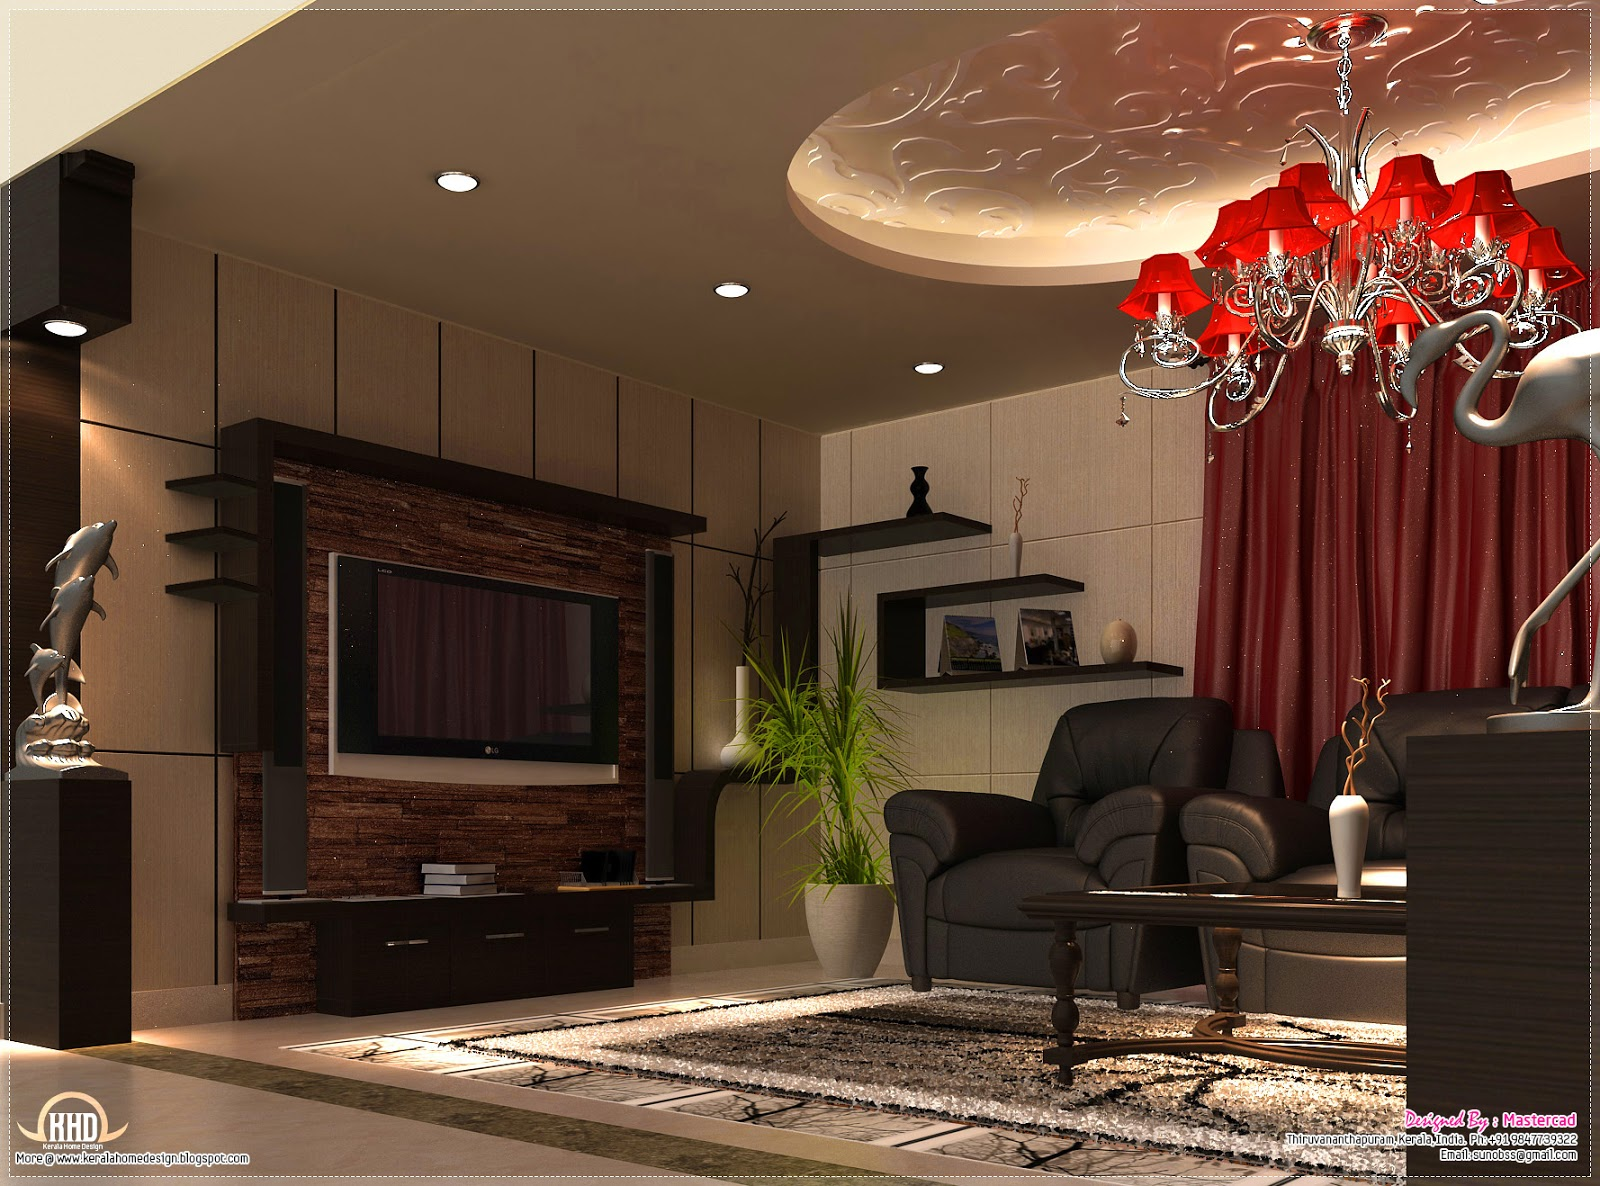 Interior design ideas kerala home design and floor plans for Indoor design ideas indian